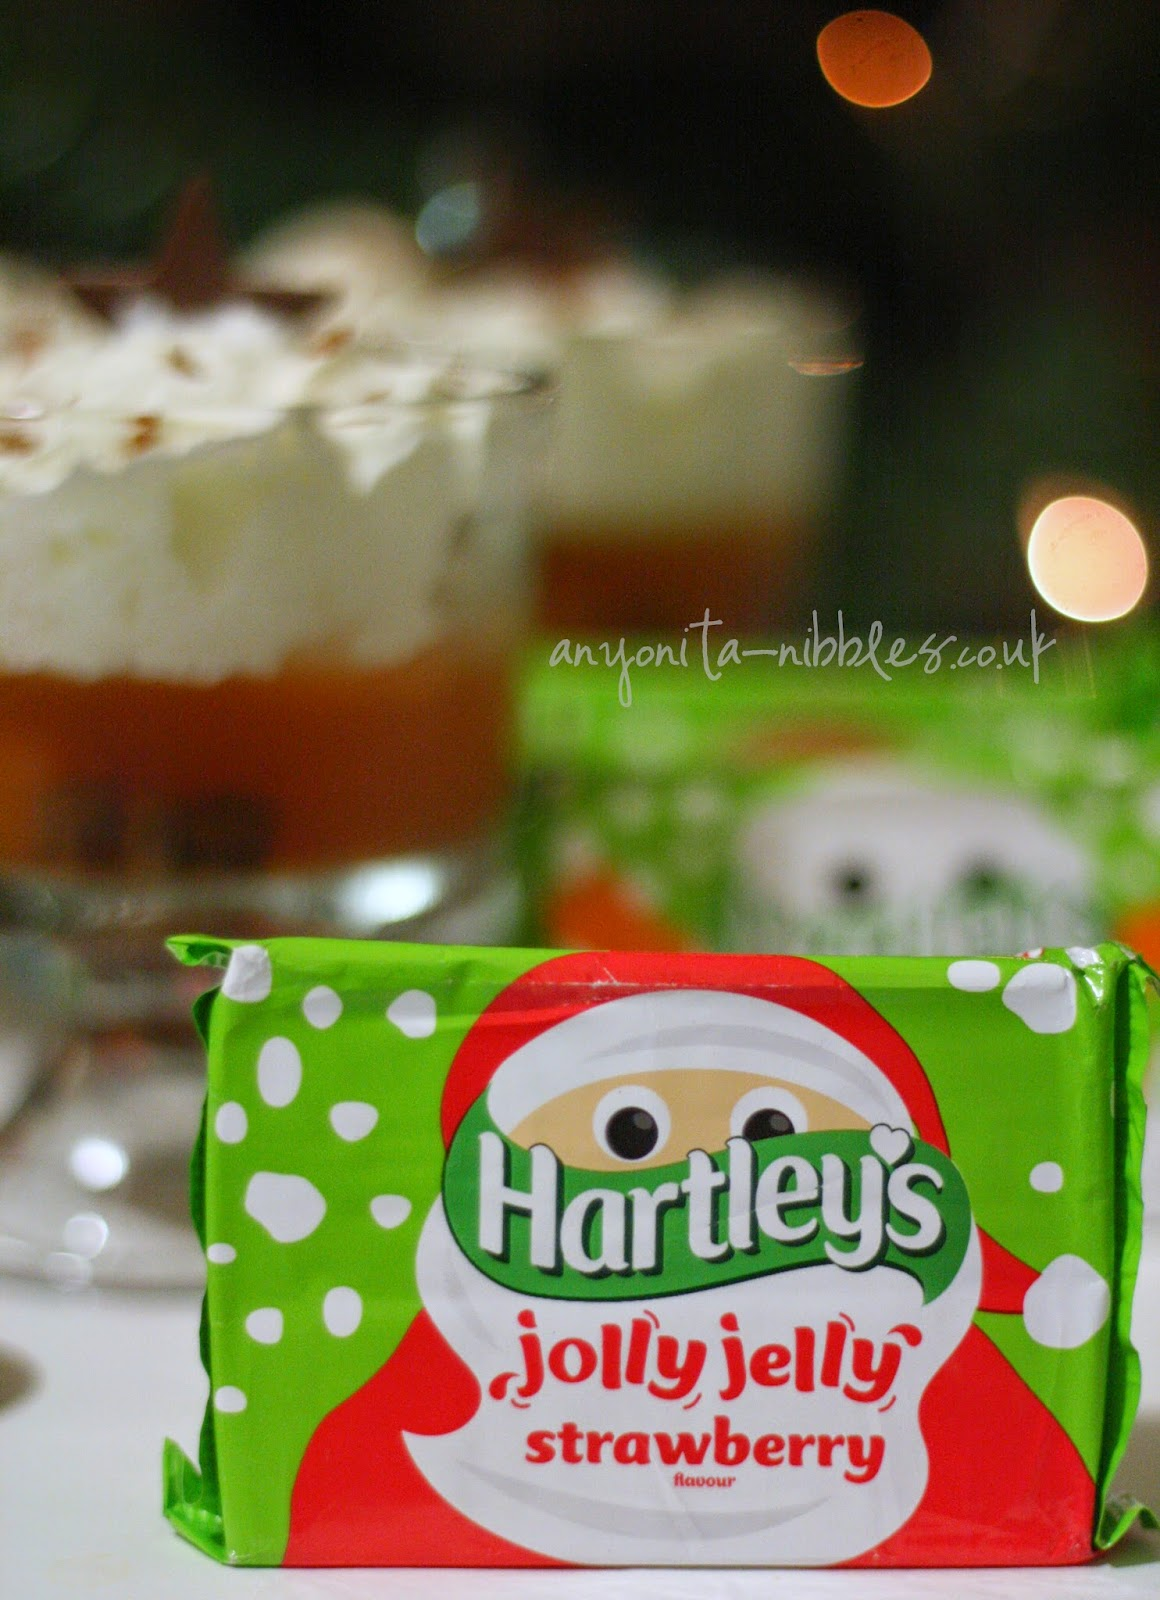 Make your Christmas festive with Hartley's Jolly Jelly from Anyonita-nibbles.co.uk